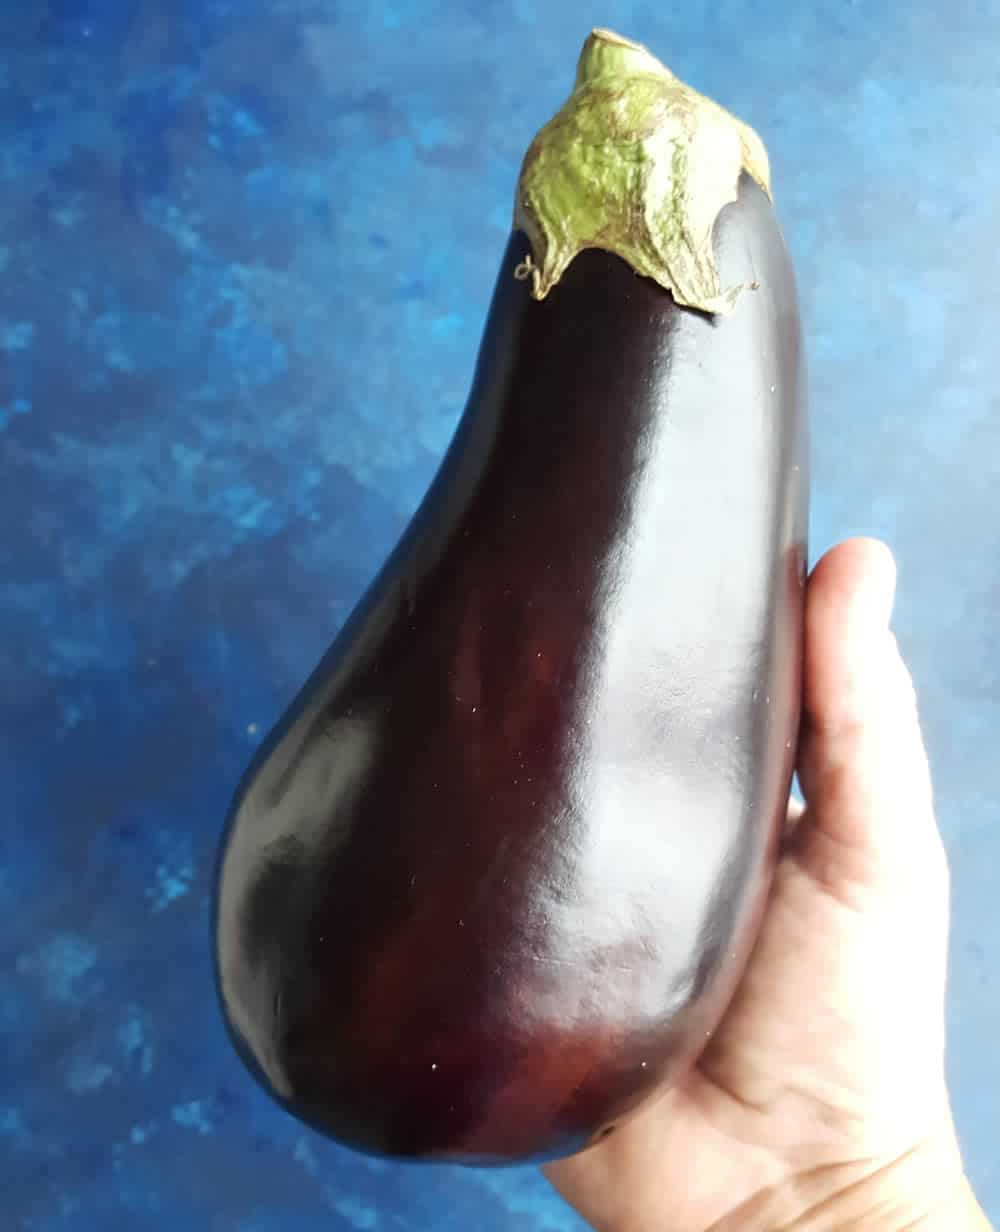 Holding an eggplant